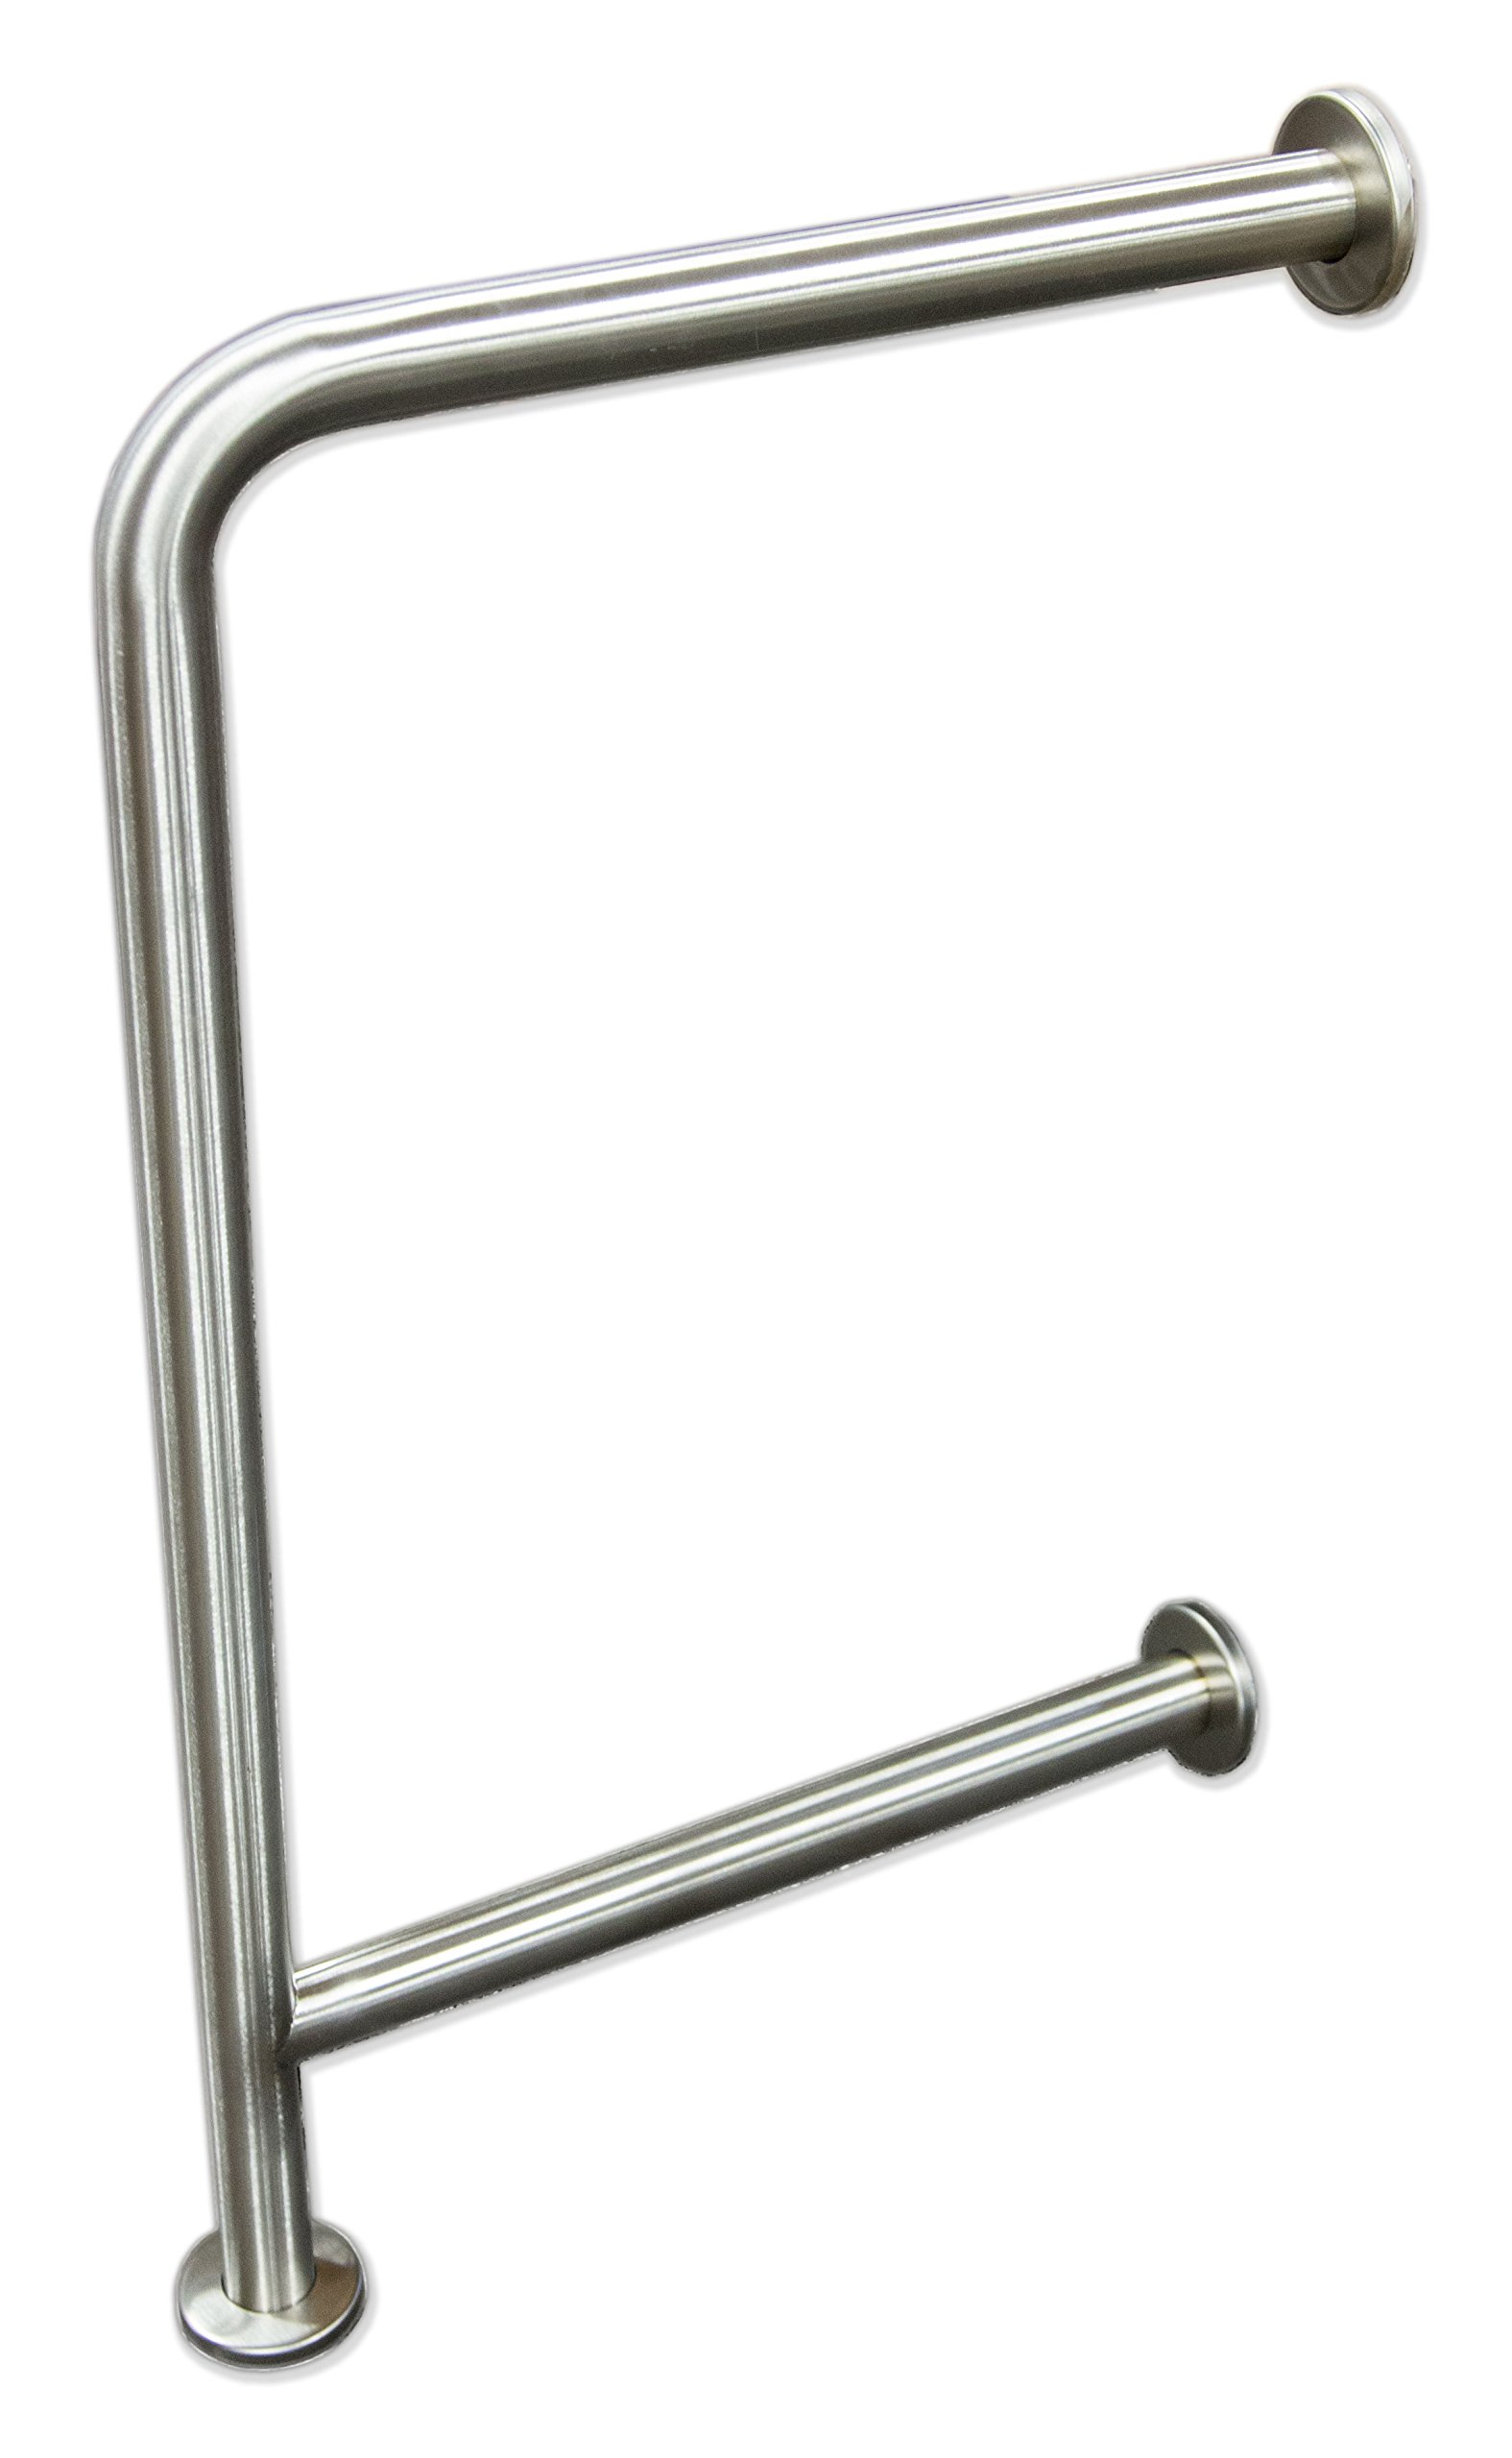 Wall to Floor Grab Bar for Drinking Fountains